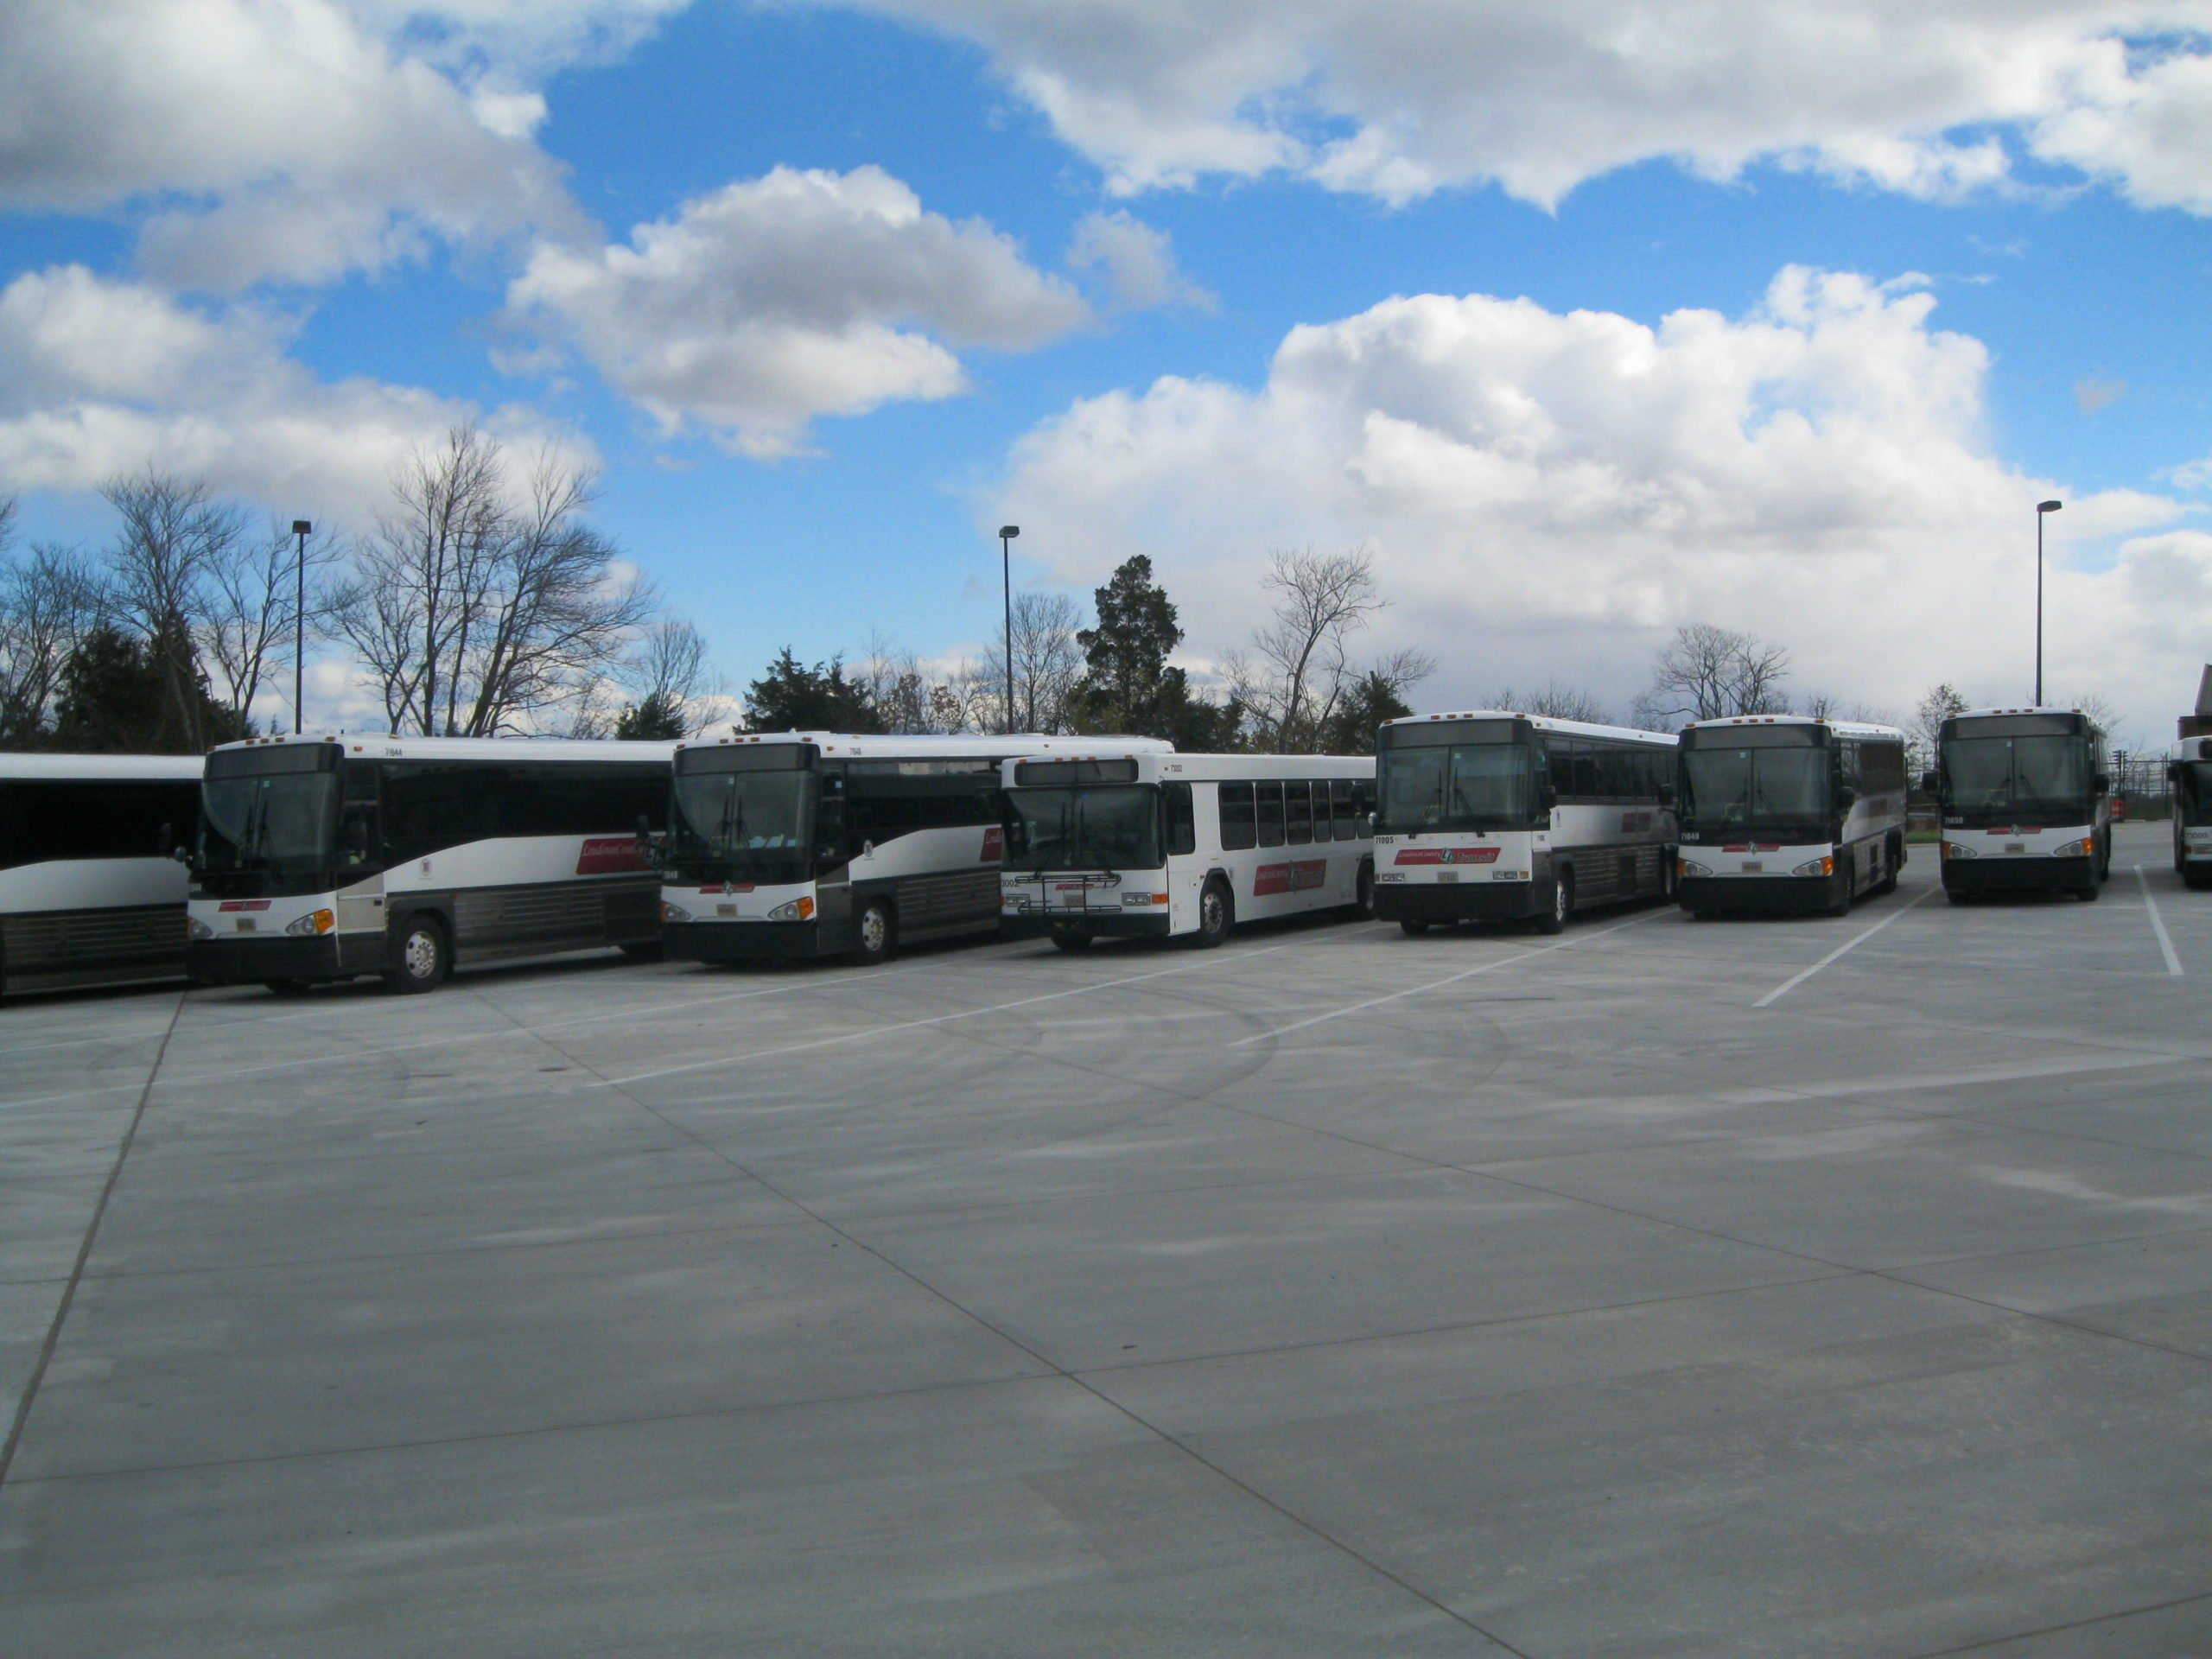 Buses-parked-at-TMOF-scaled-1